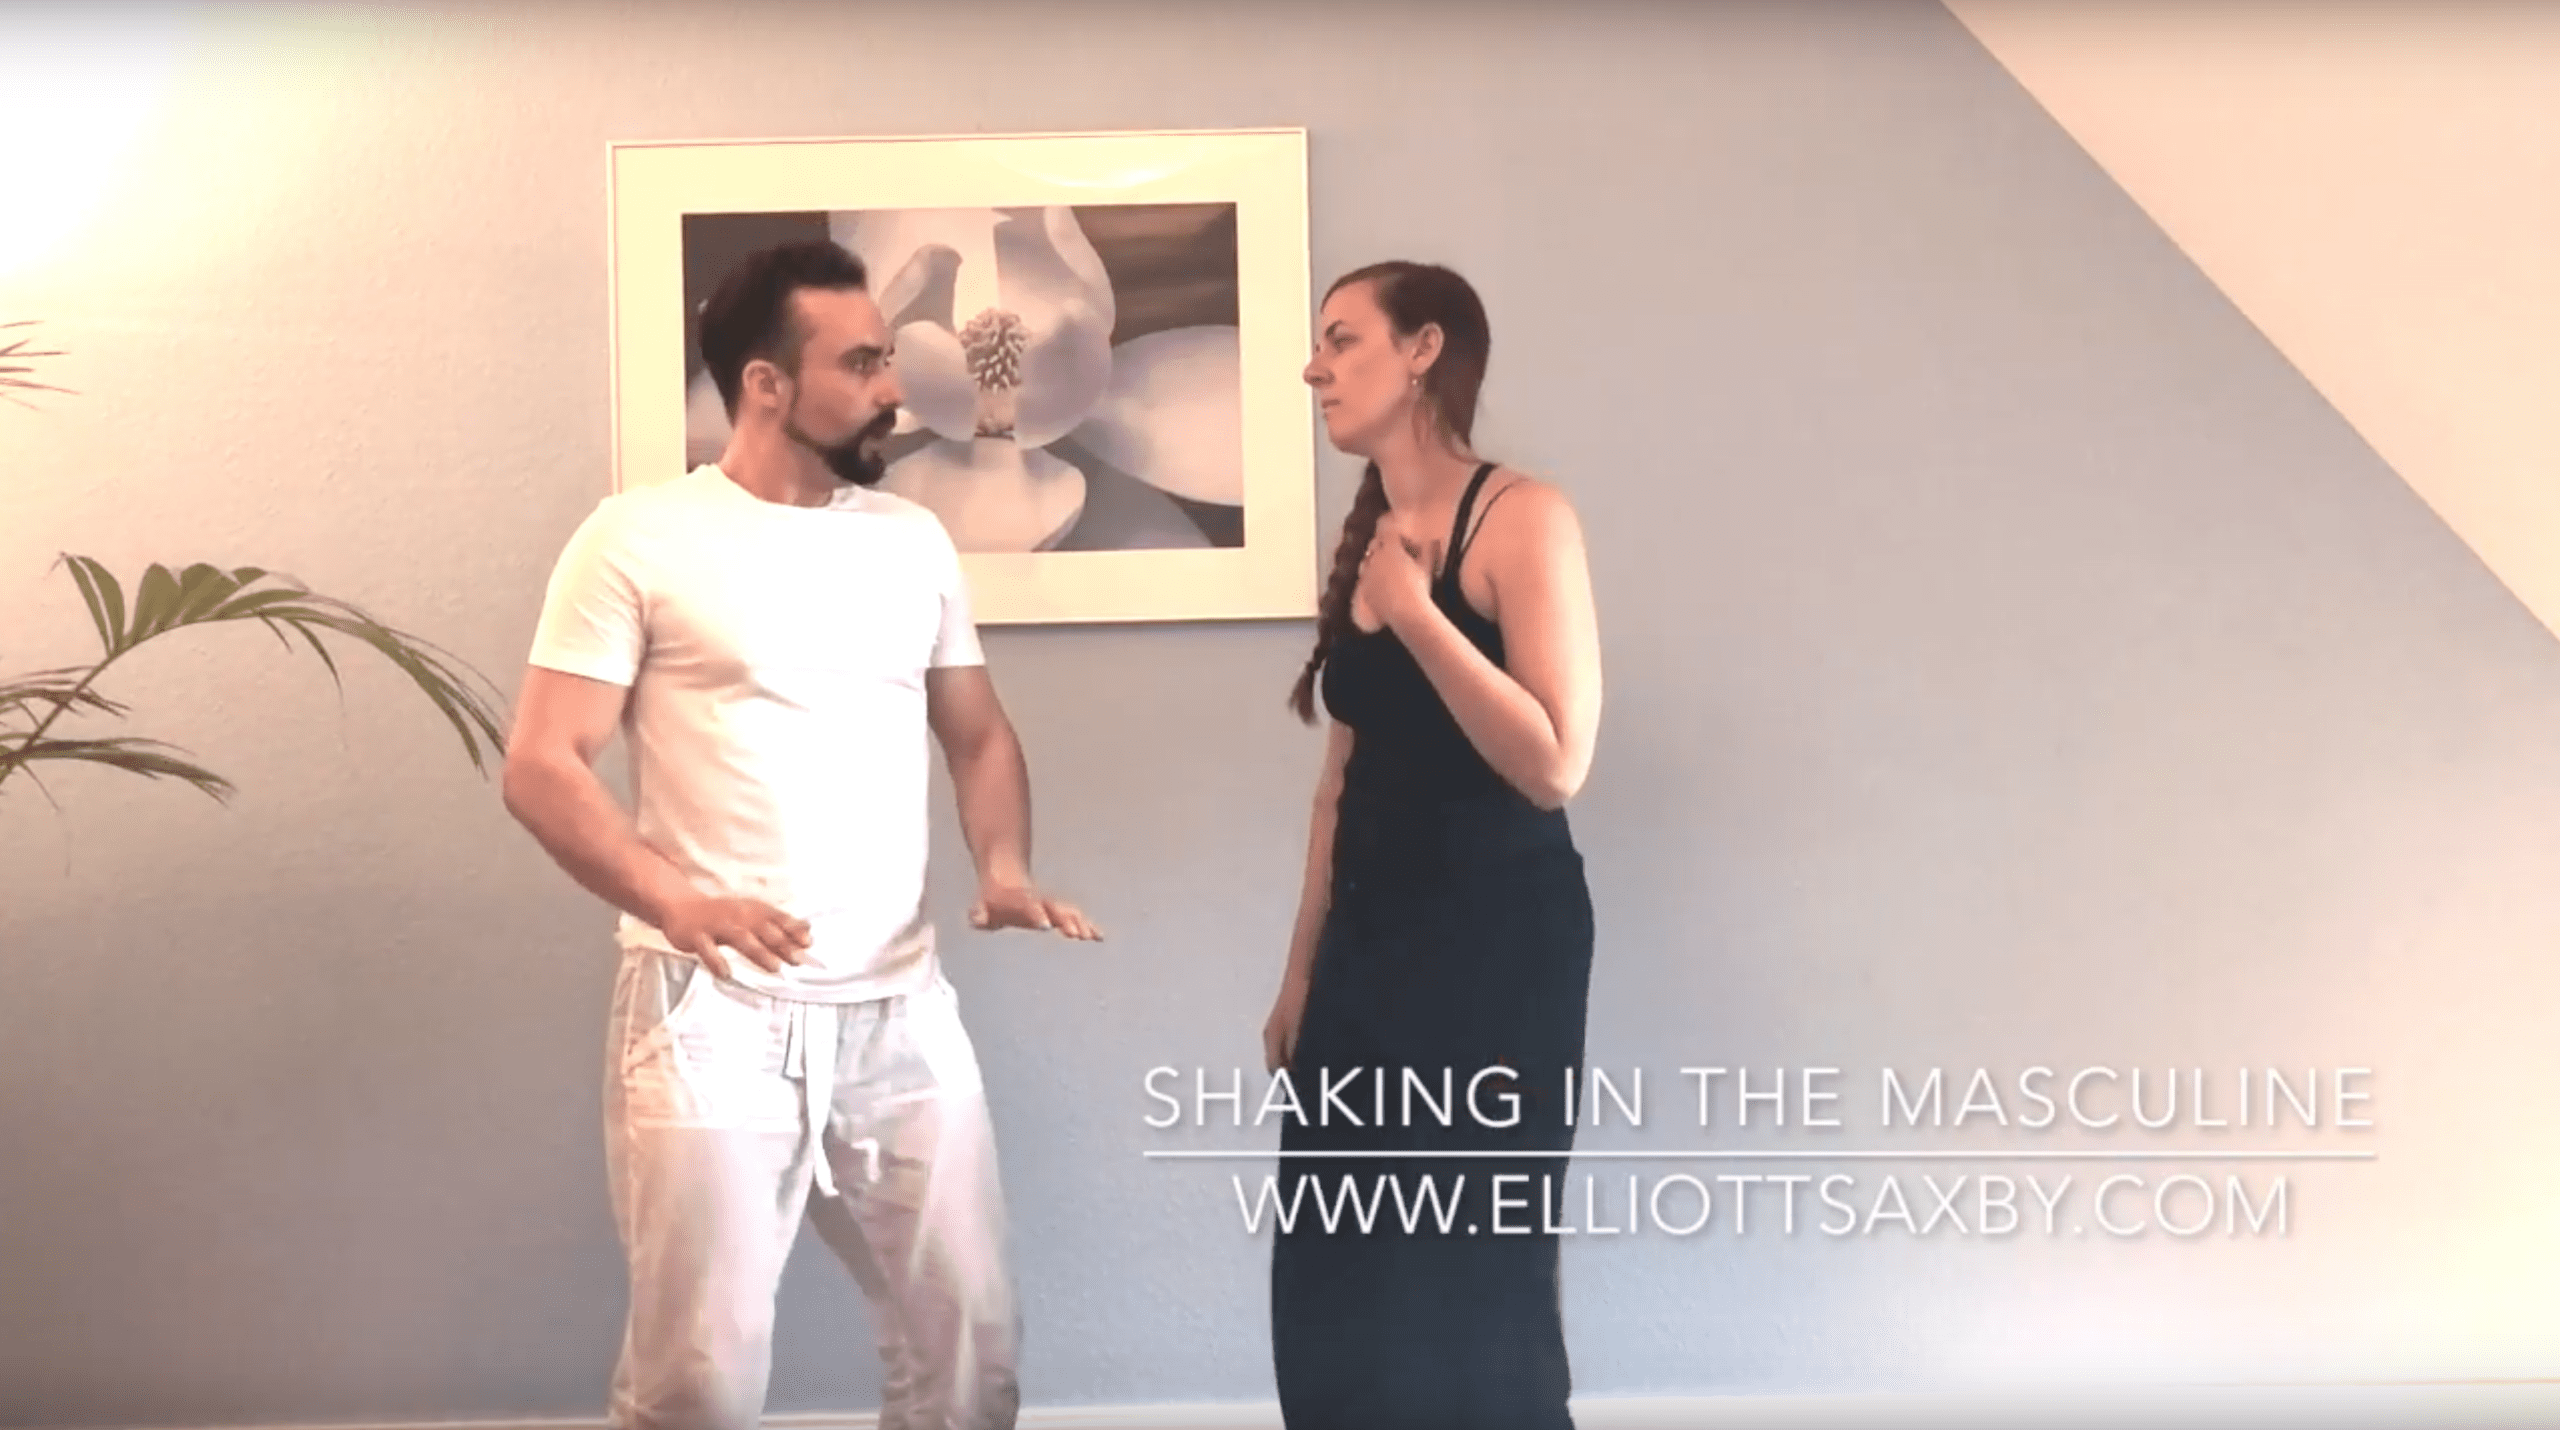 Shaking in the masculine